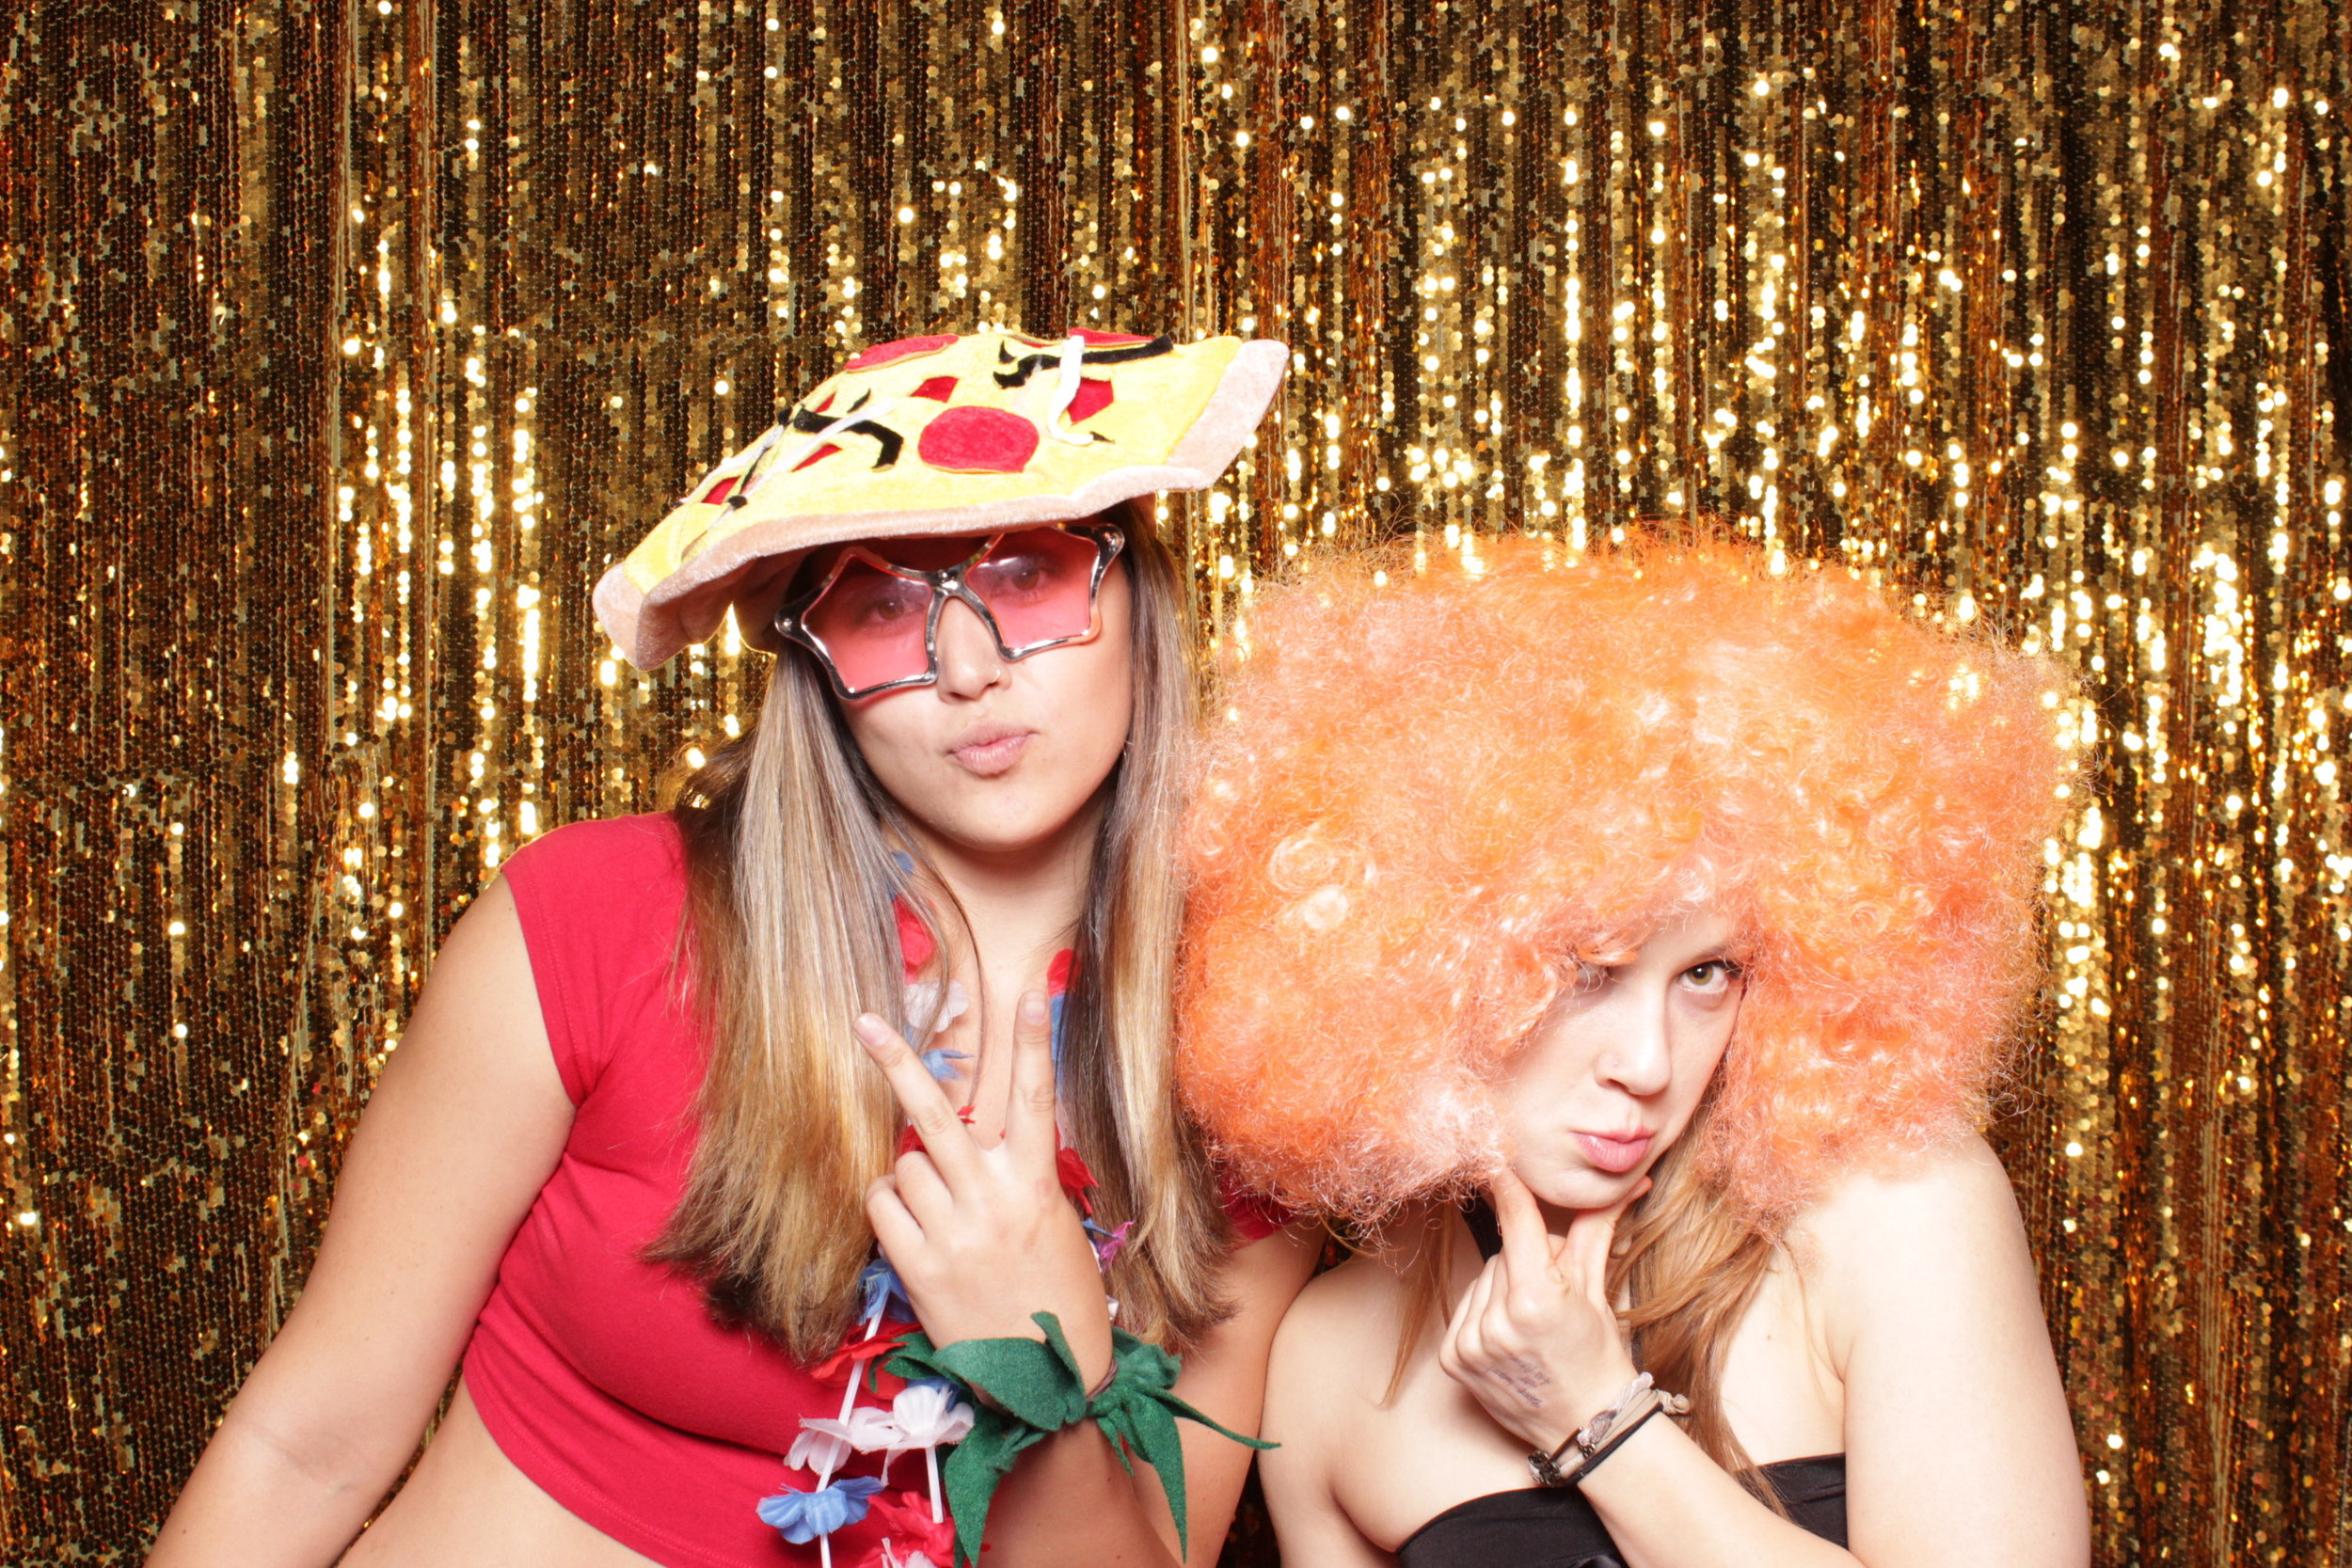 Chico-photo-booth-rental-easy-setup